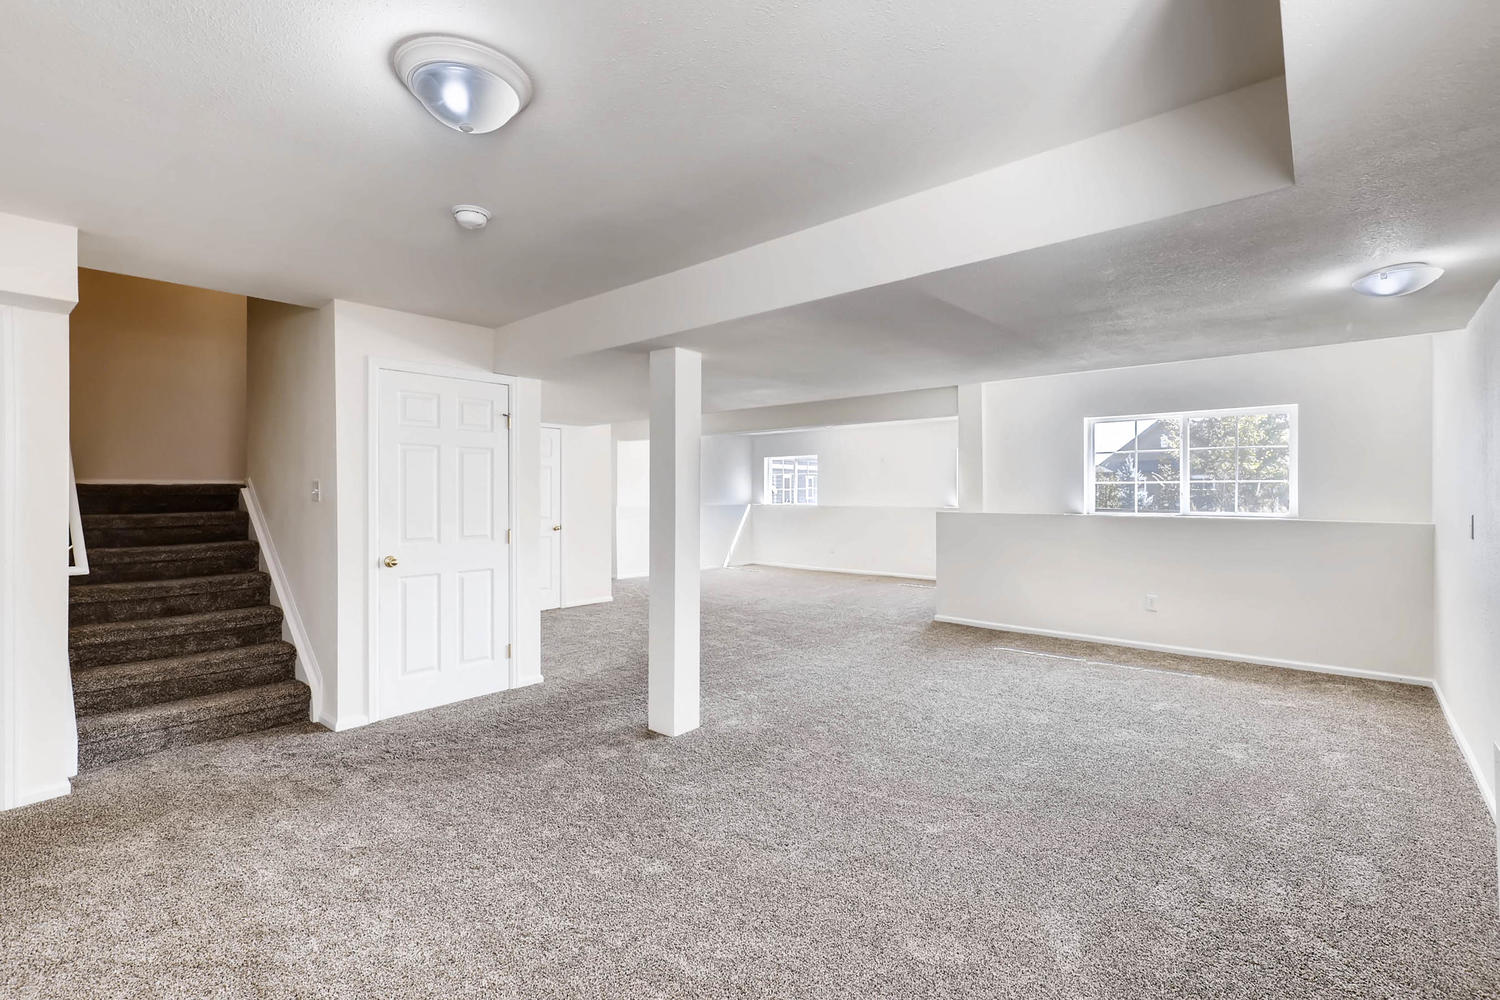 Photo of 1420 102nd Ave, Greeley, CO, 80634